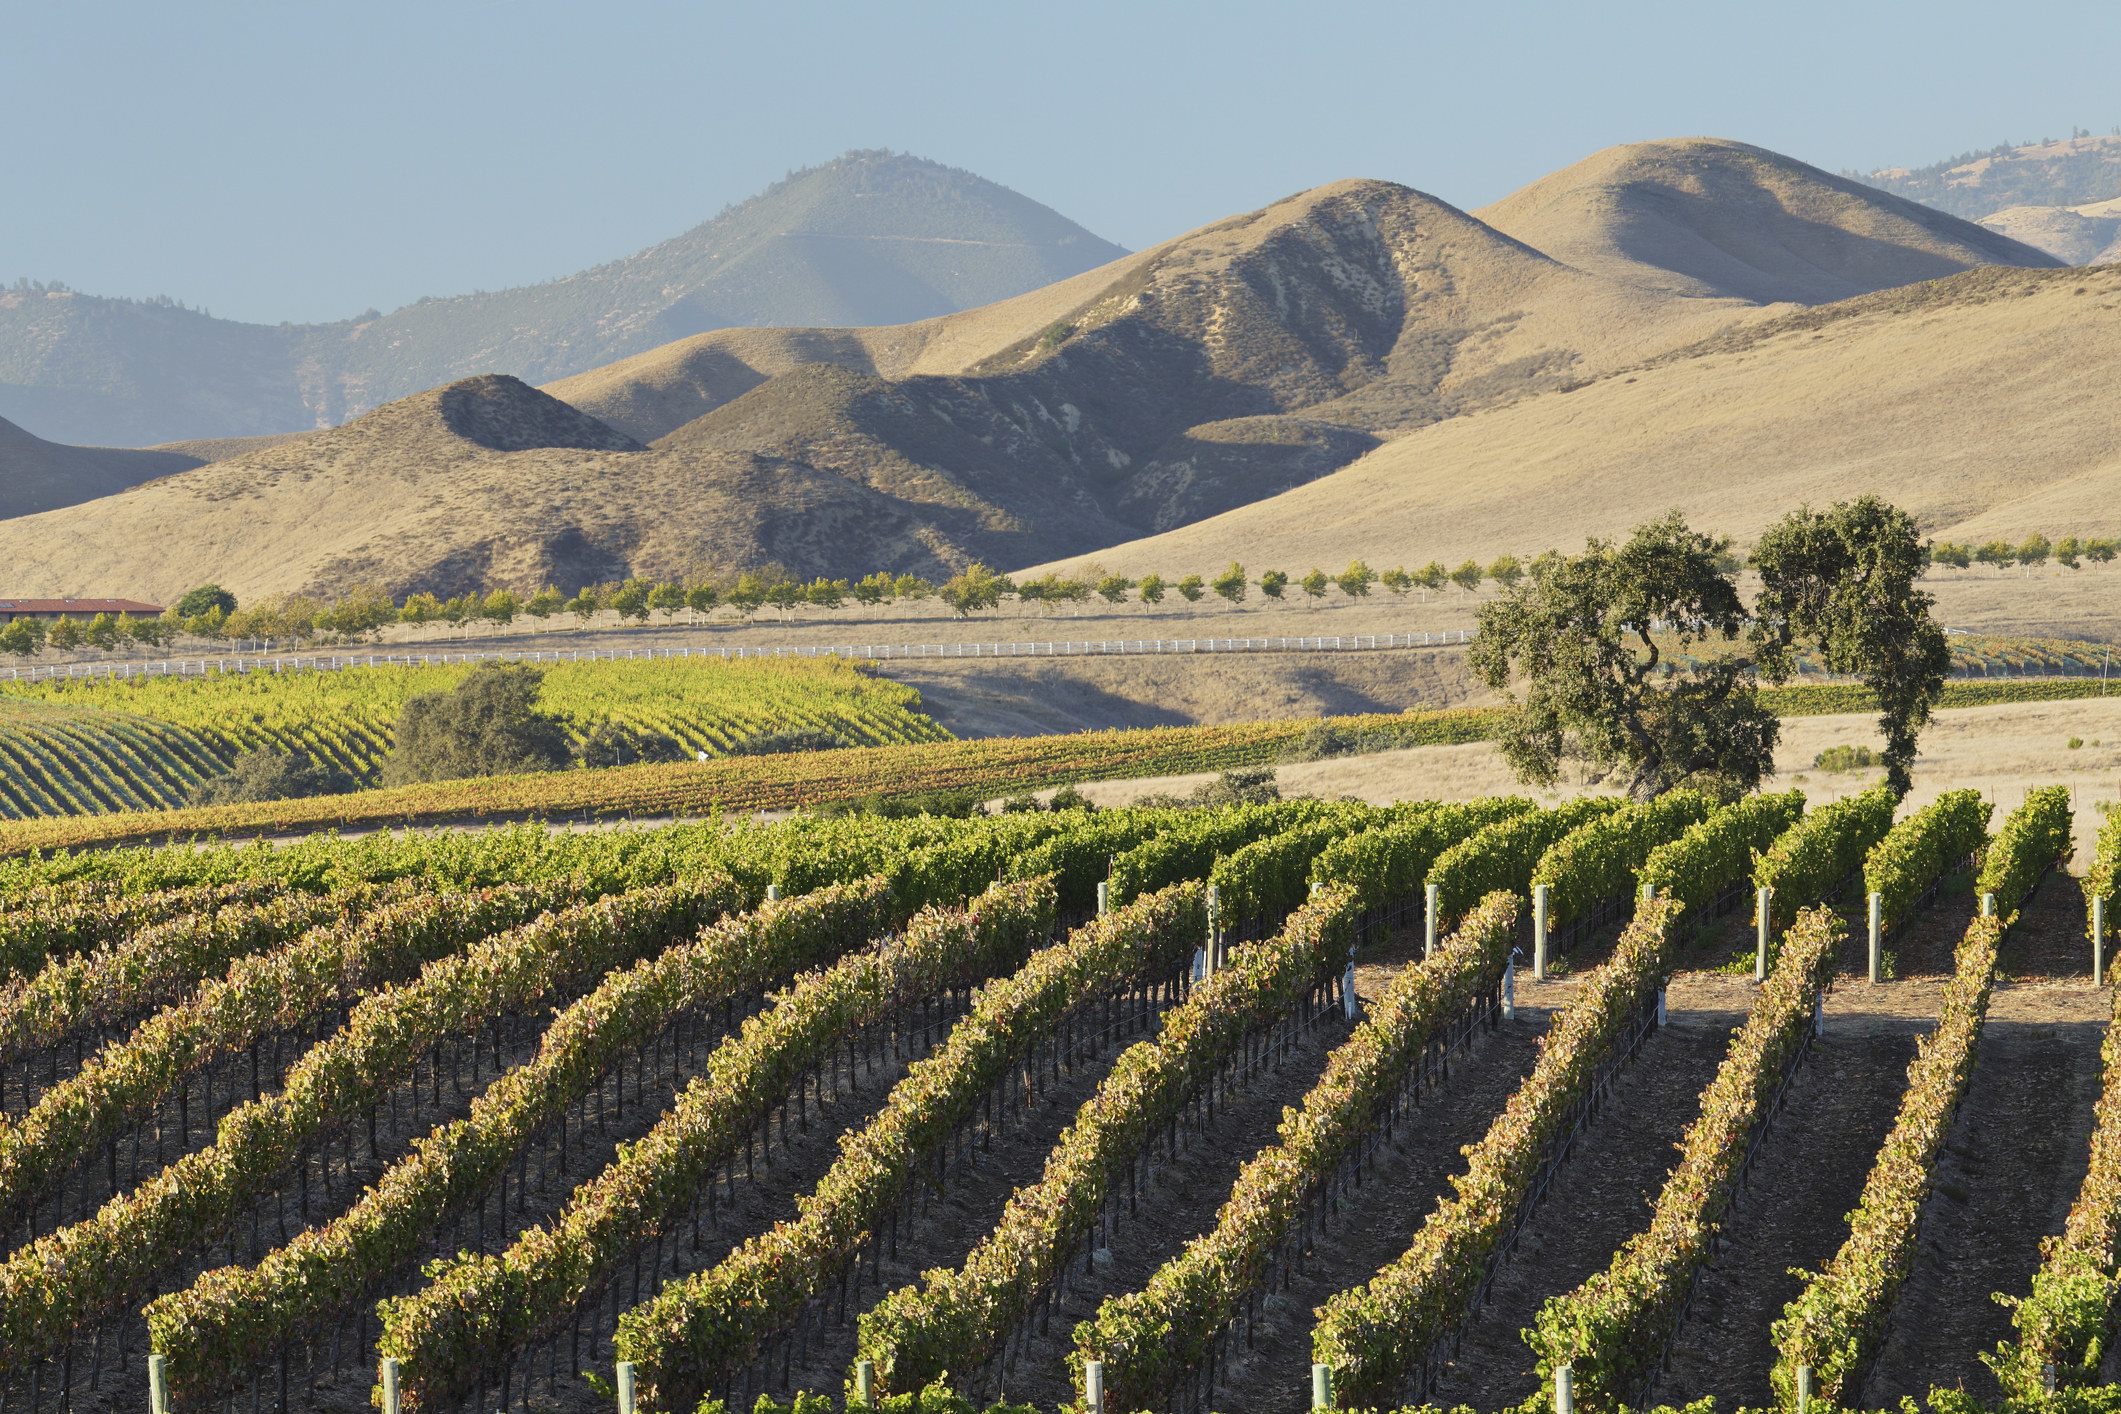 Manicured vineyard with rolling hills in the background